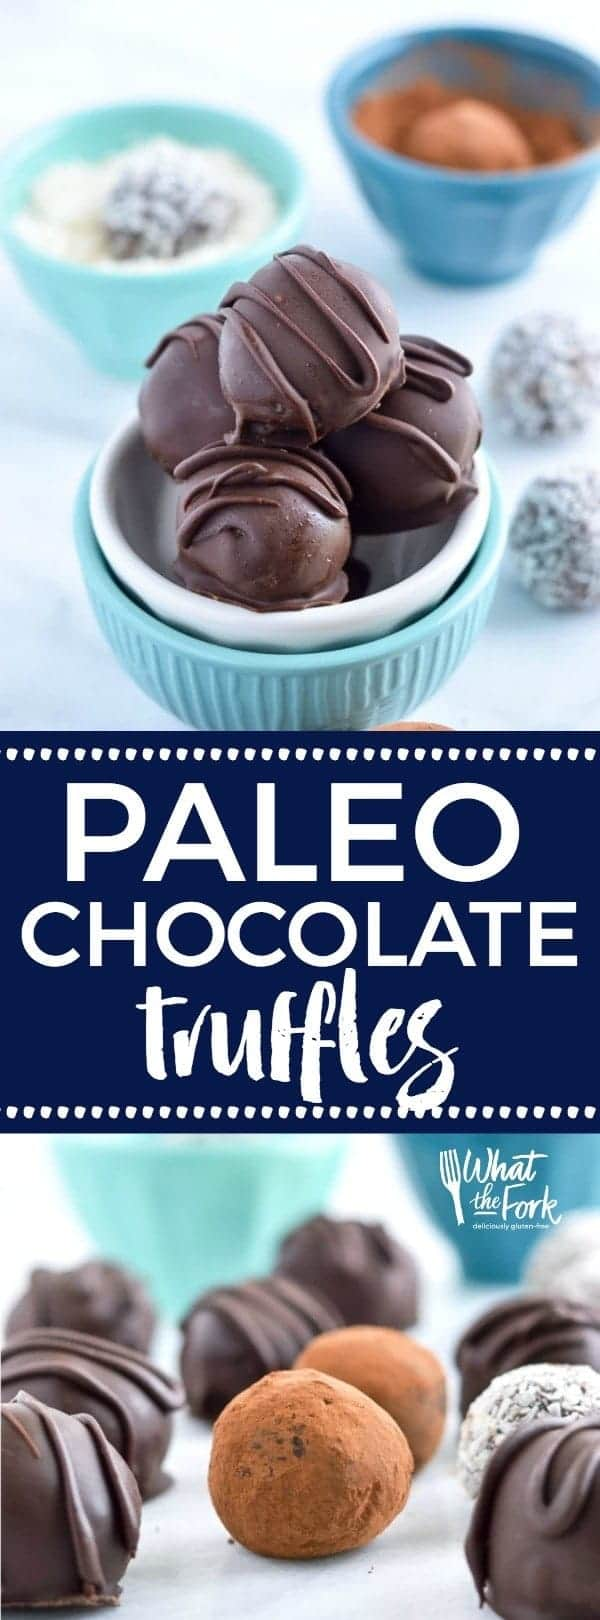 How to Make Paleo Chocolate Truffles - What the Fork